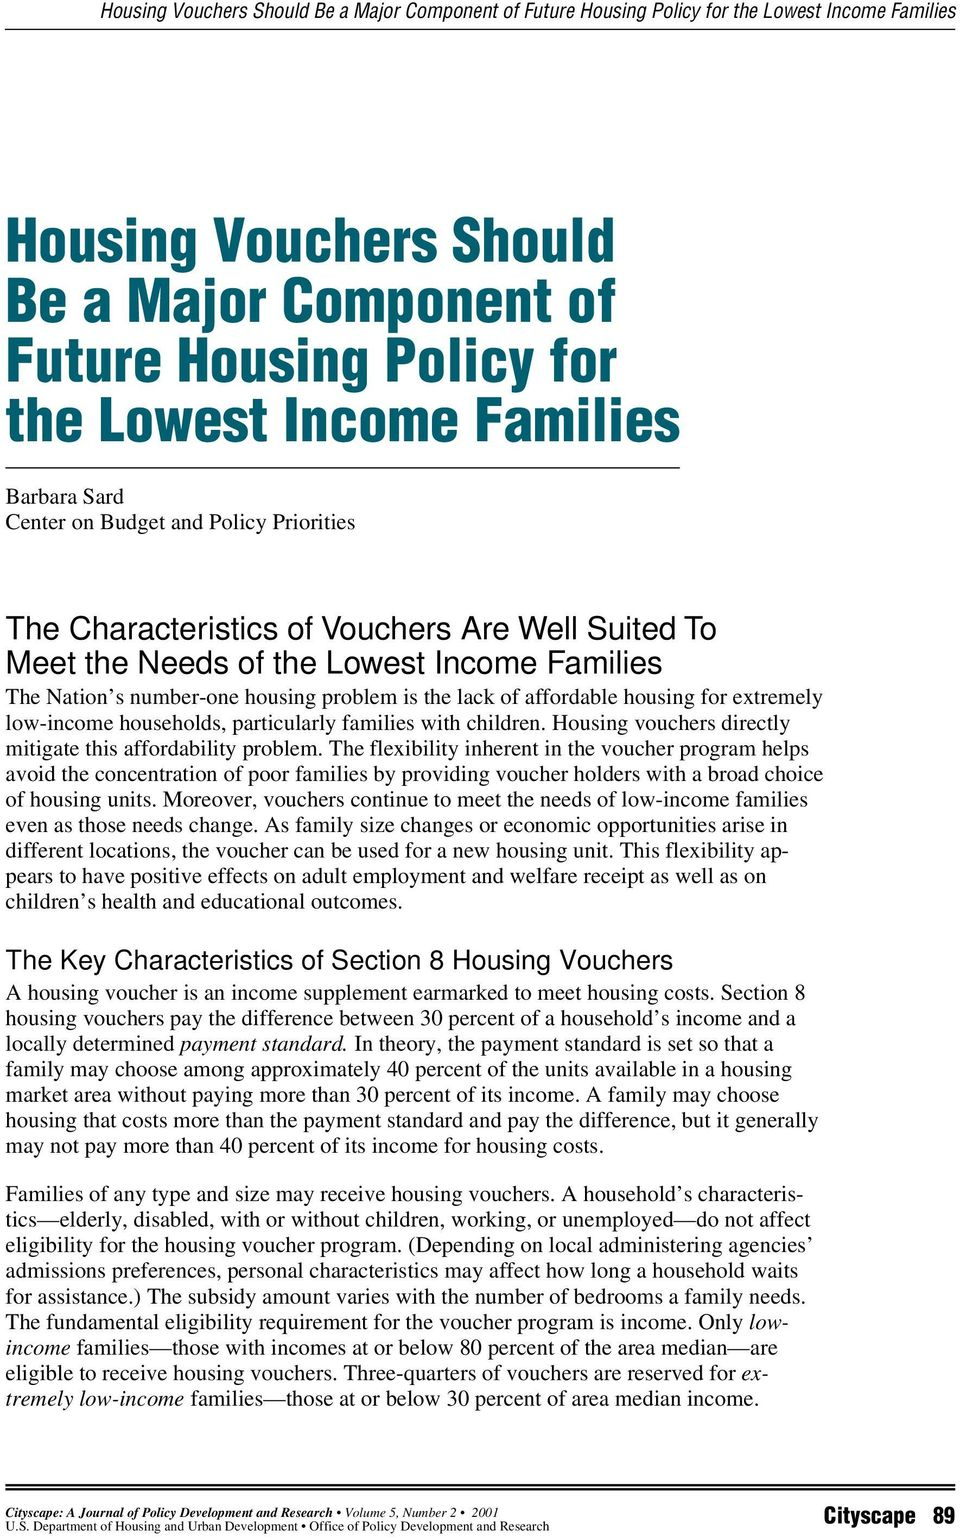 the lack of affordable housing for extremely low-income households, particularly families with children. Housing vouchers directly mitigate this affordability problem.